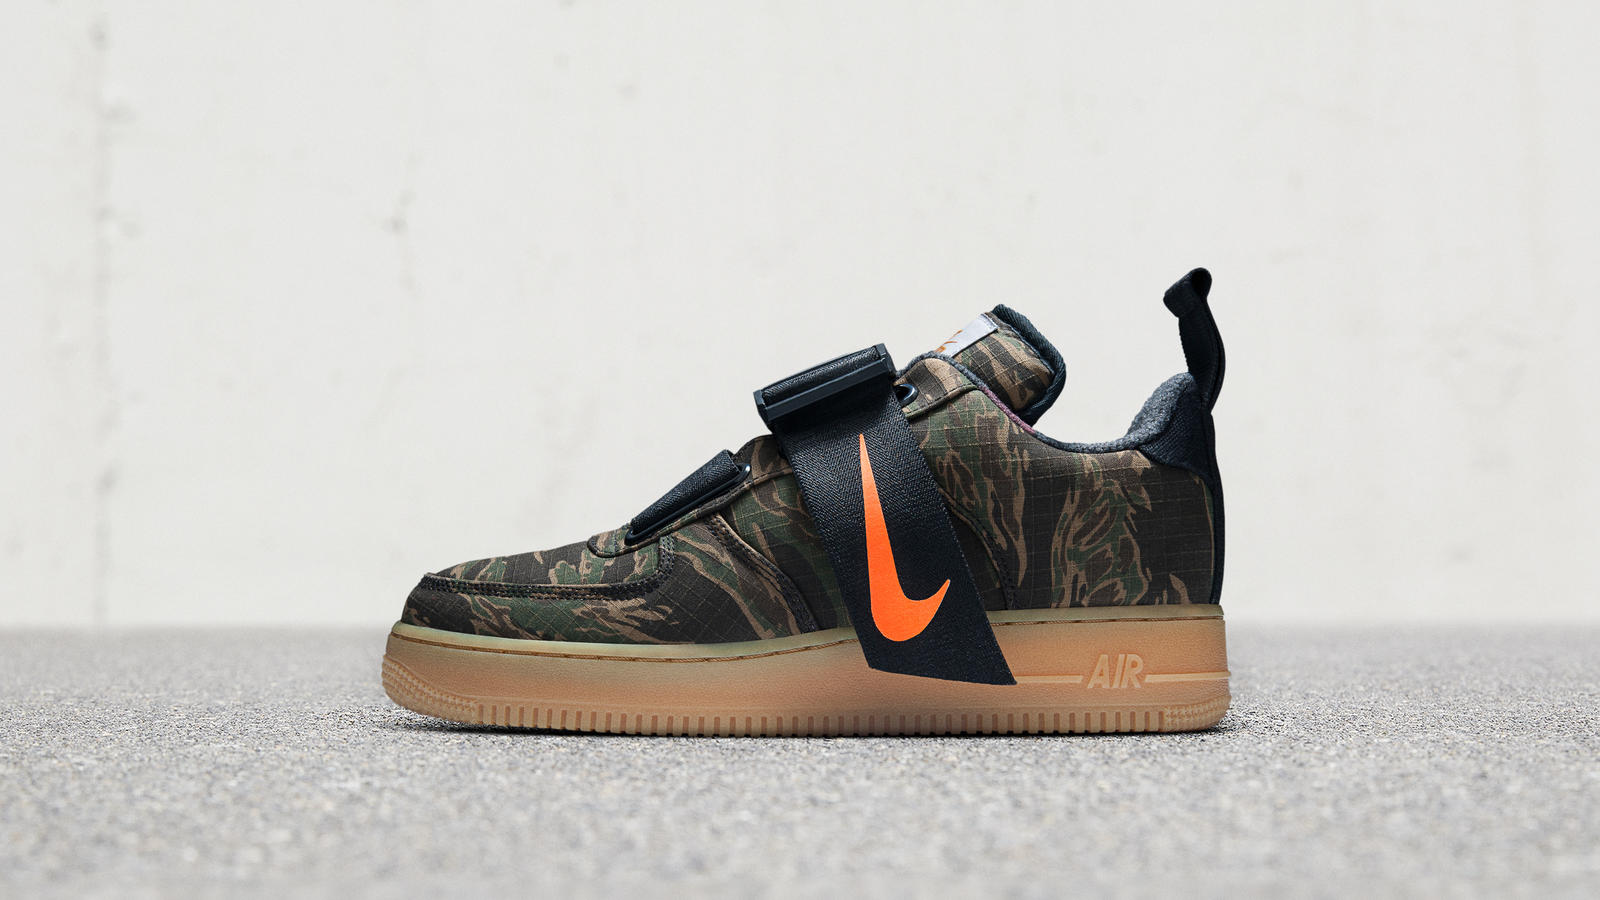 ed71251ee Nike x Carhartt Air Force 1 Low, Vandal Supreme High, Air Force 1 ...